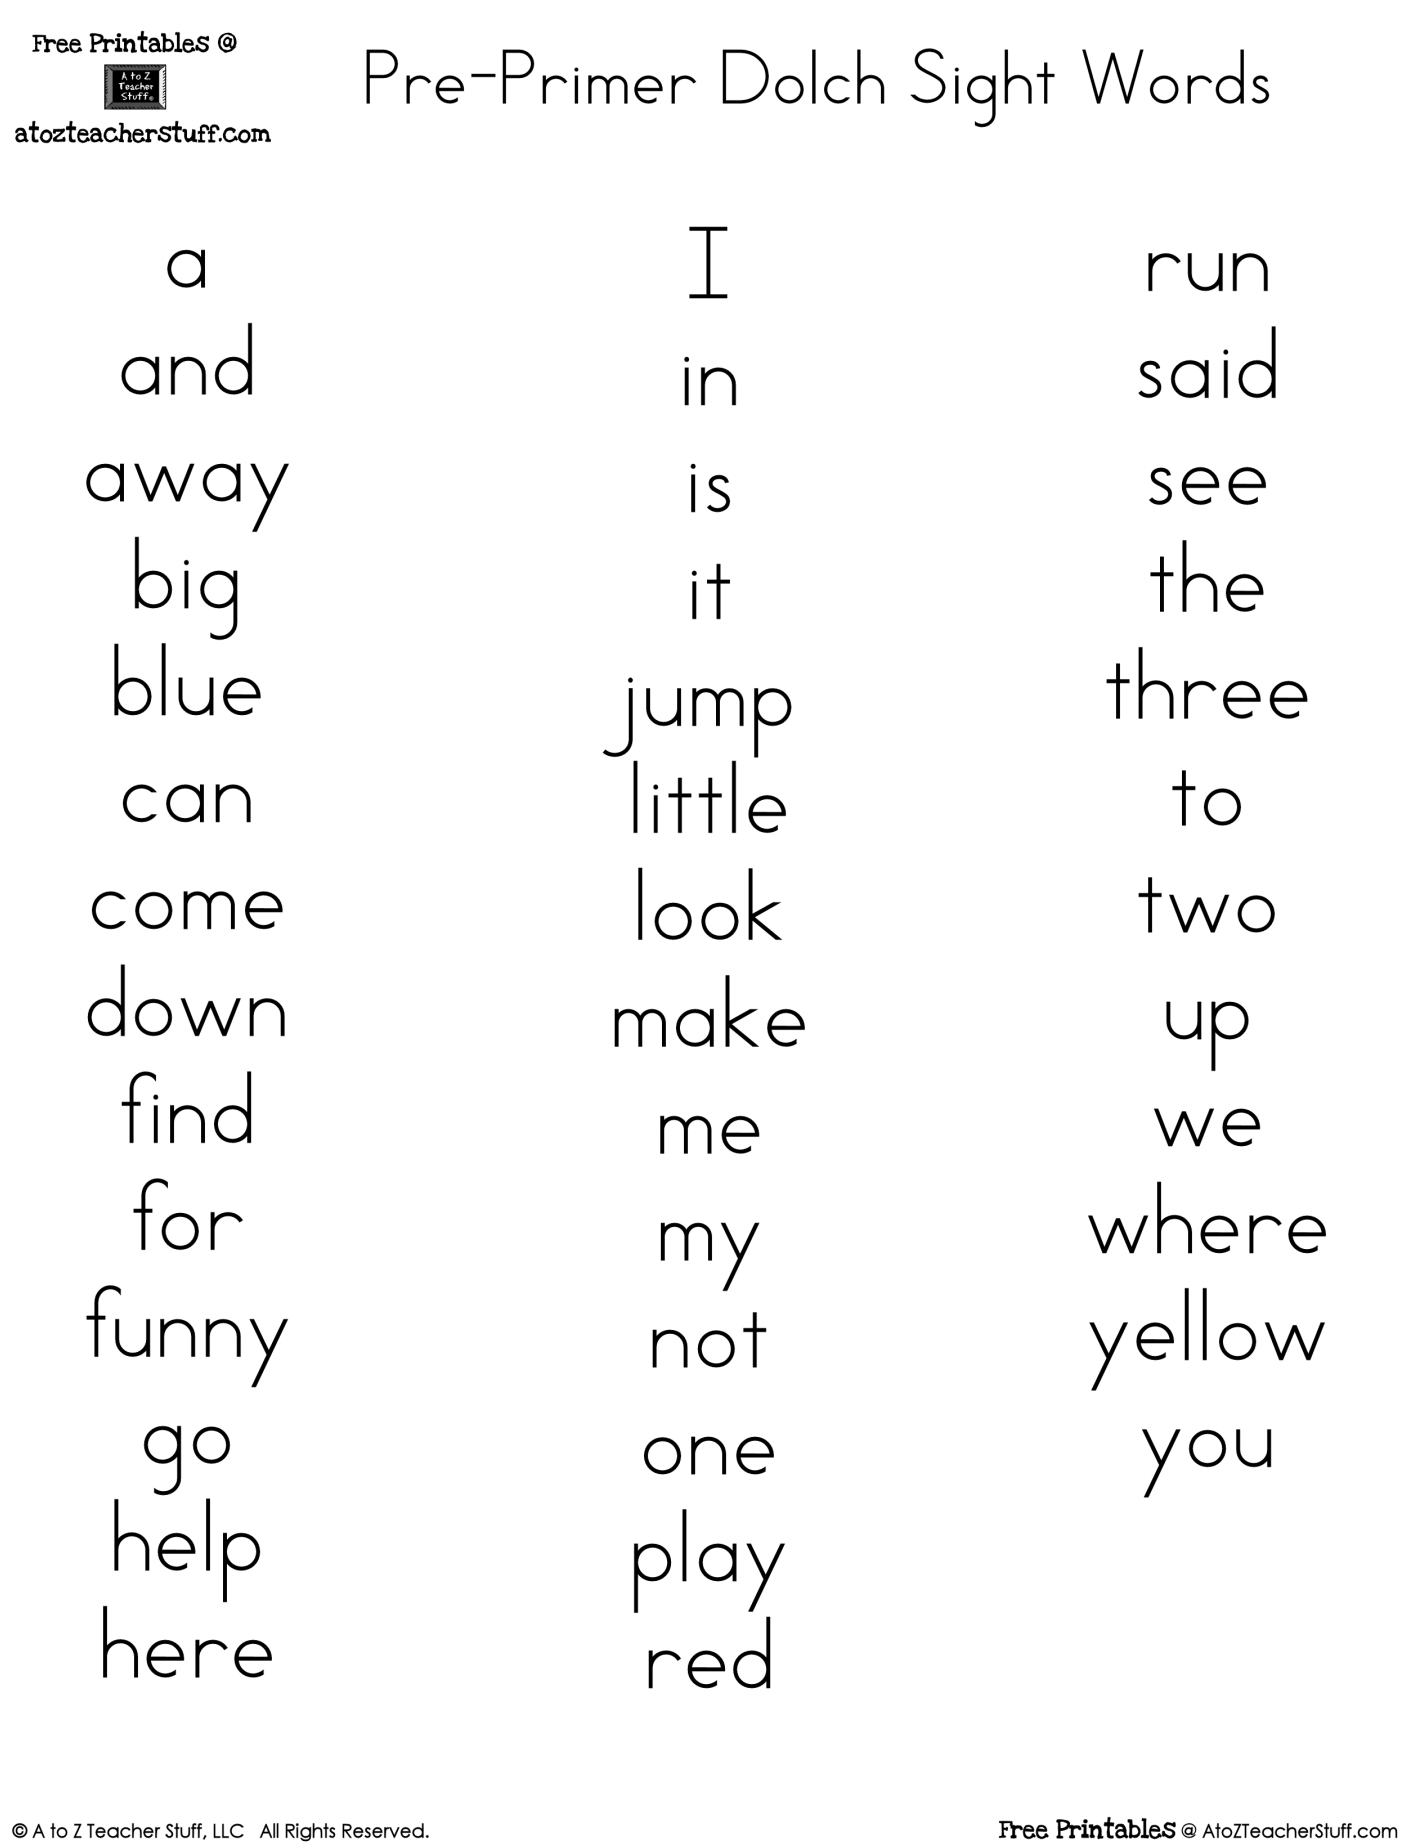 Pre-Primer Dolch Sight Words Free Printables | Reading Ideas For - Free Printable Kindergarten Sight Words